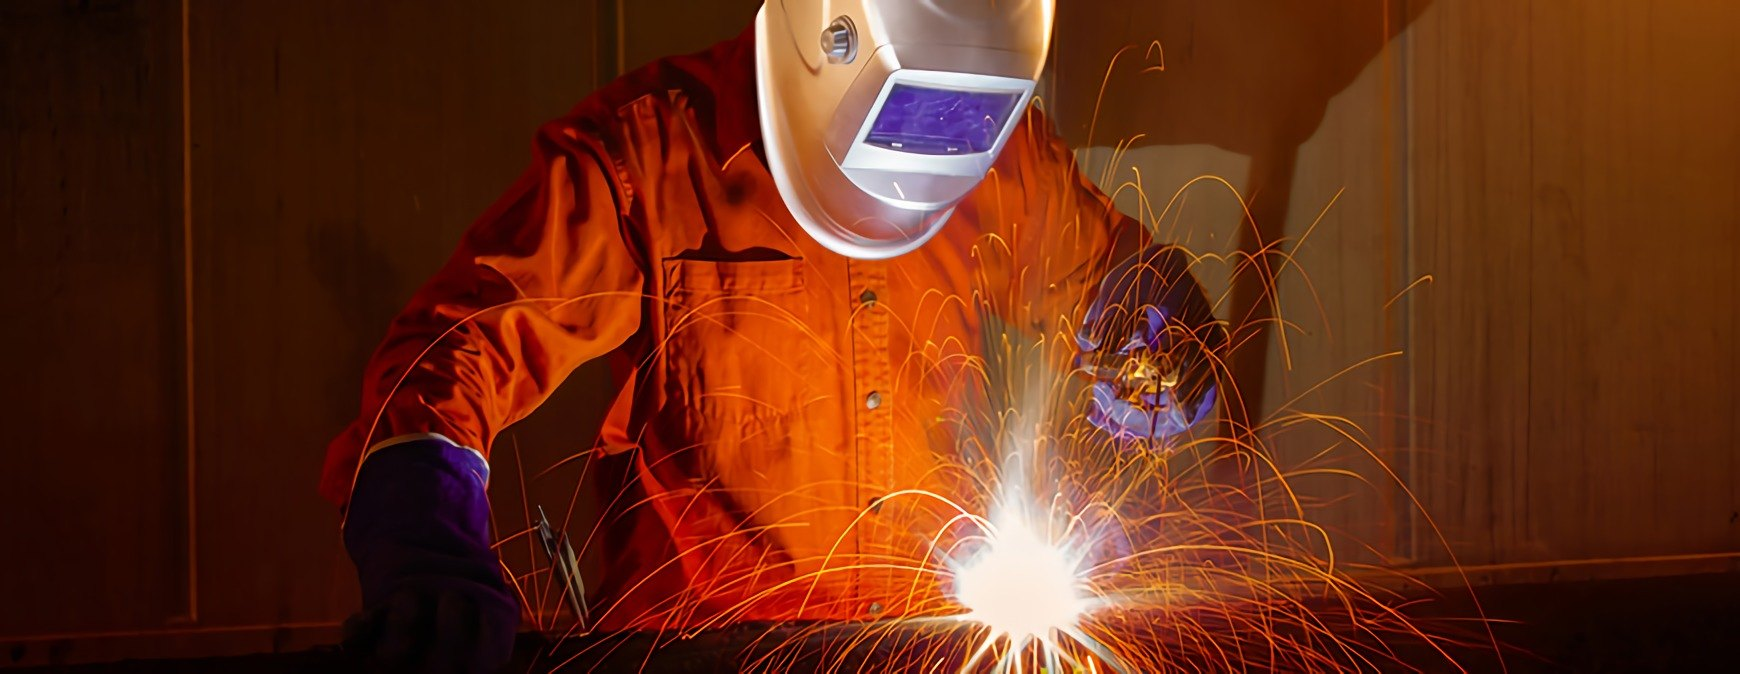 common welding mistakes